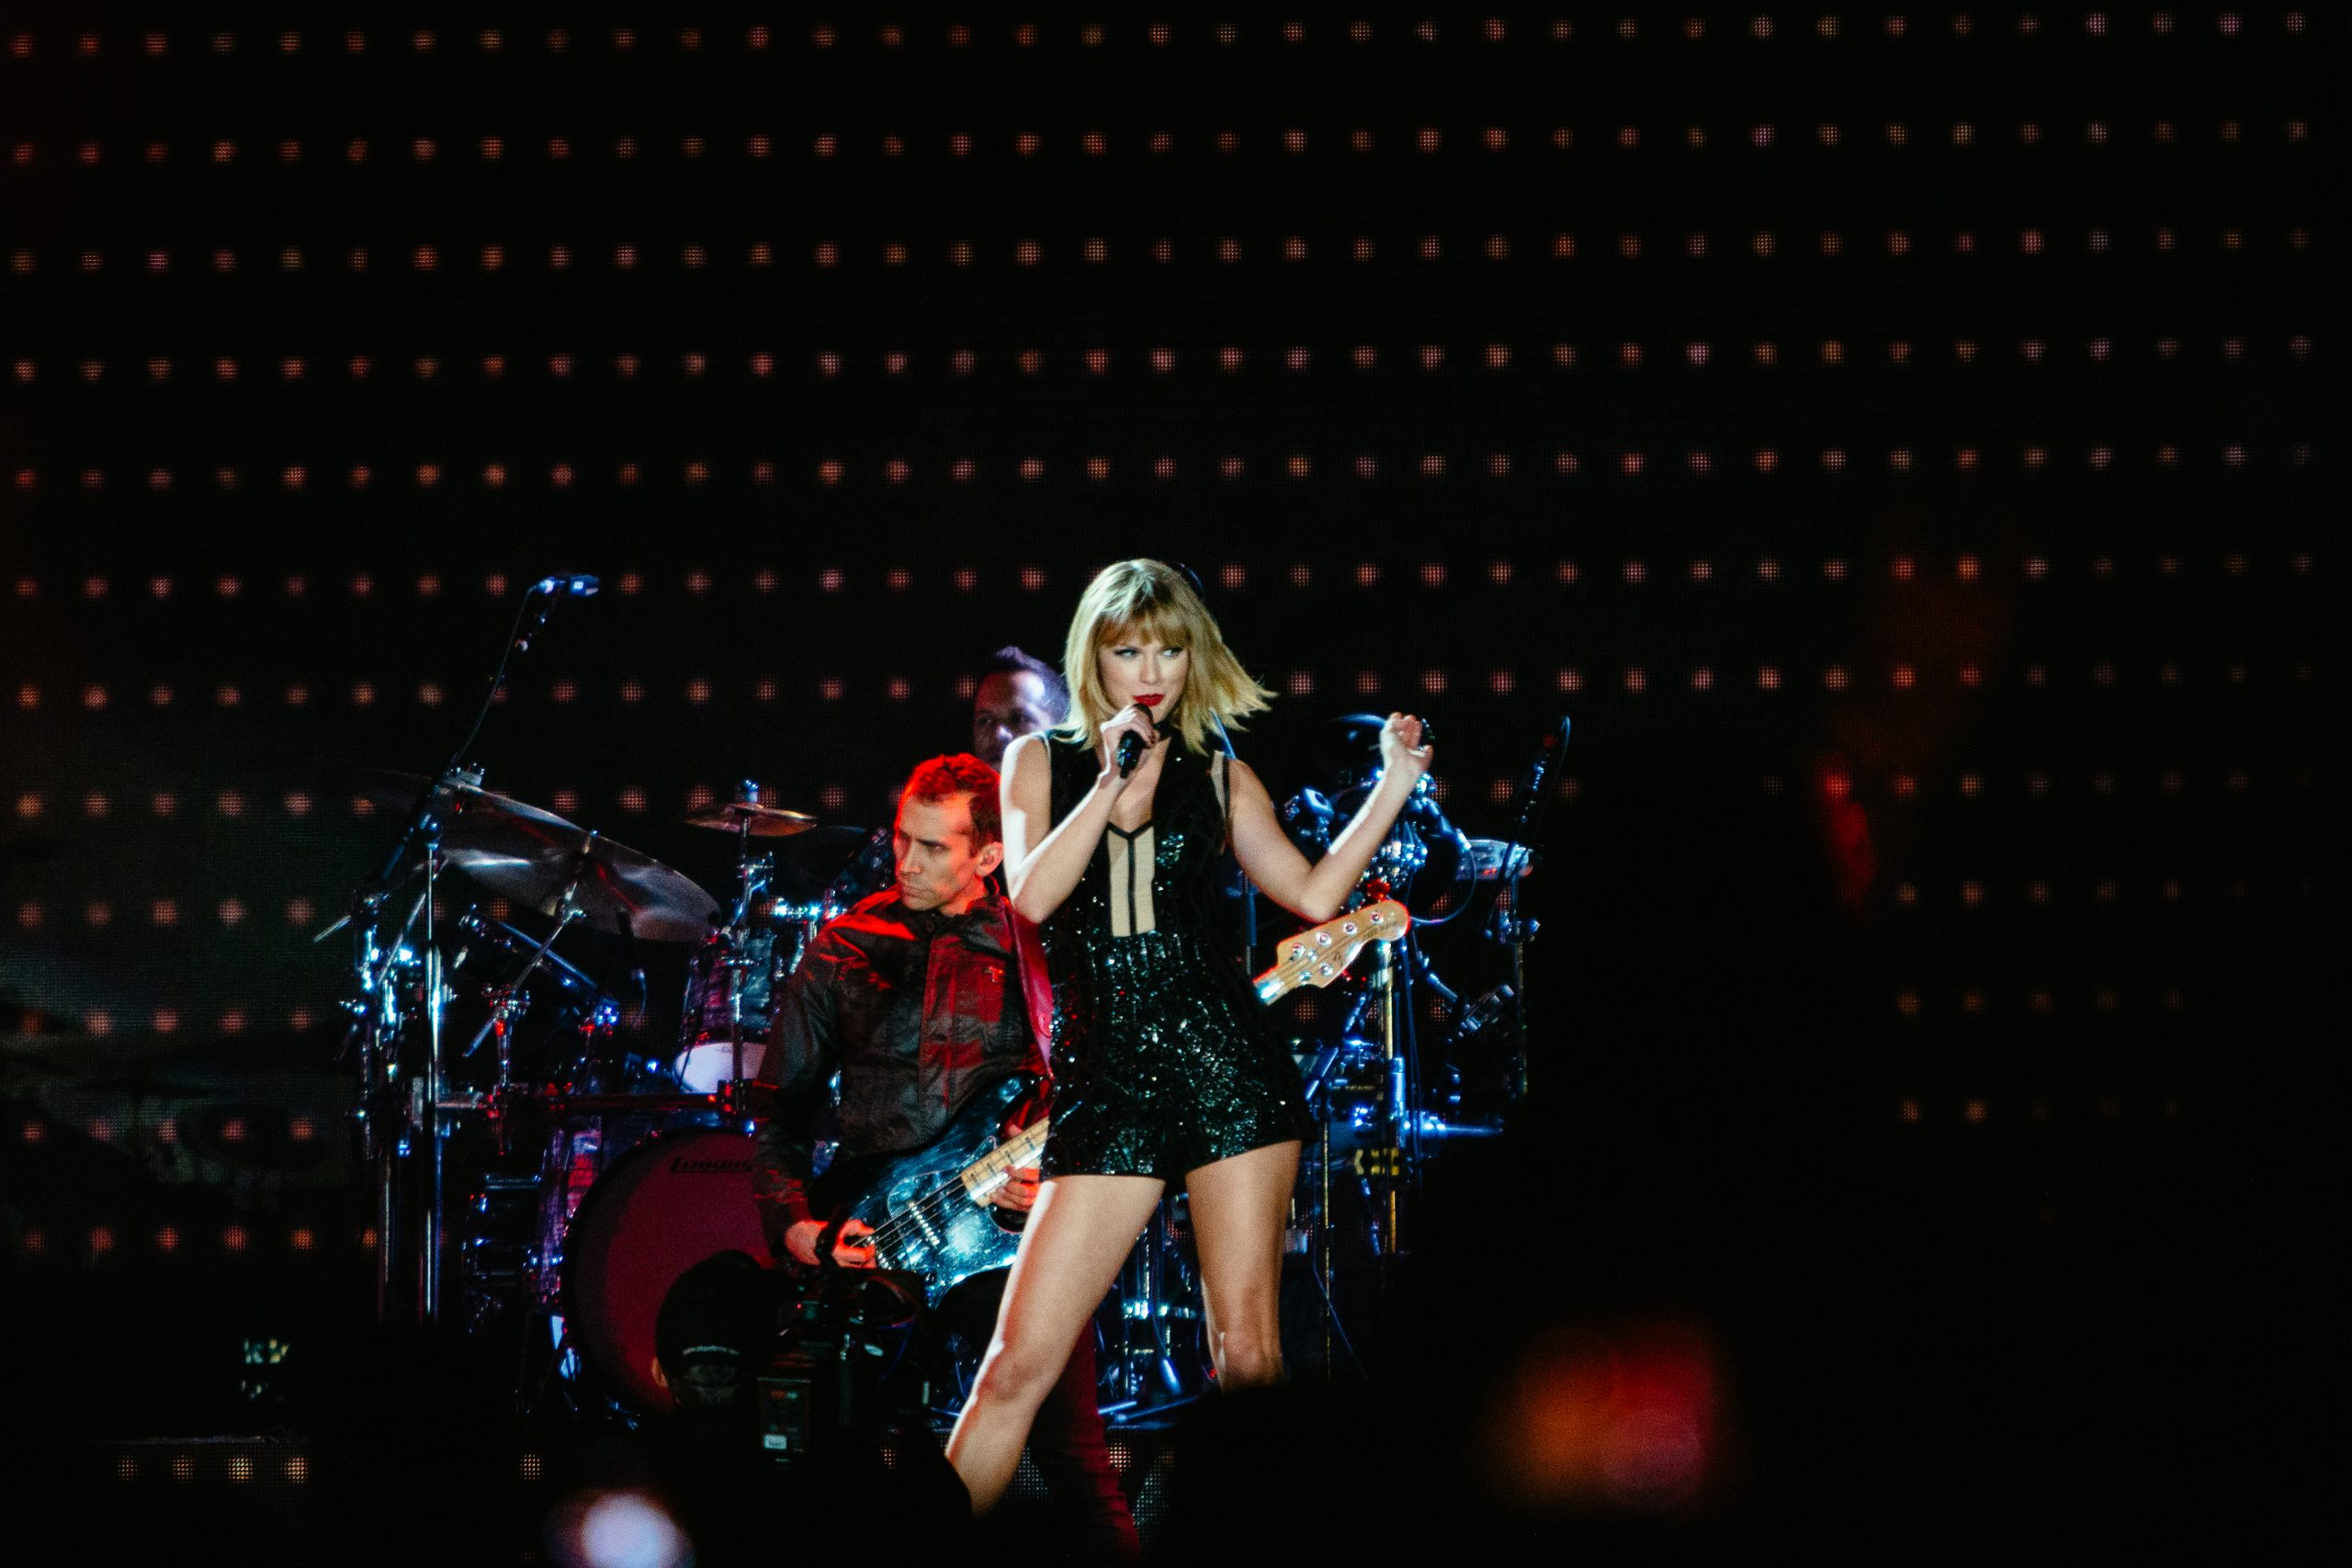 Taylor Swift performing at the 2016 Formula 1 United States Grand Prix